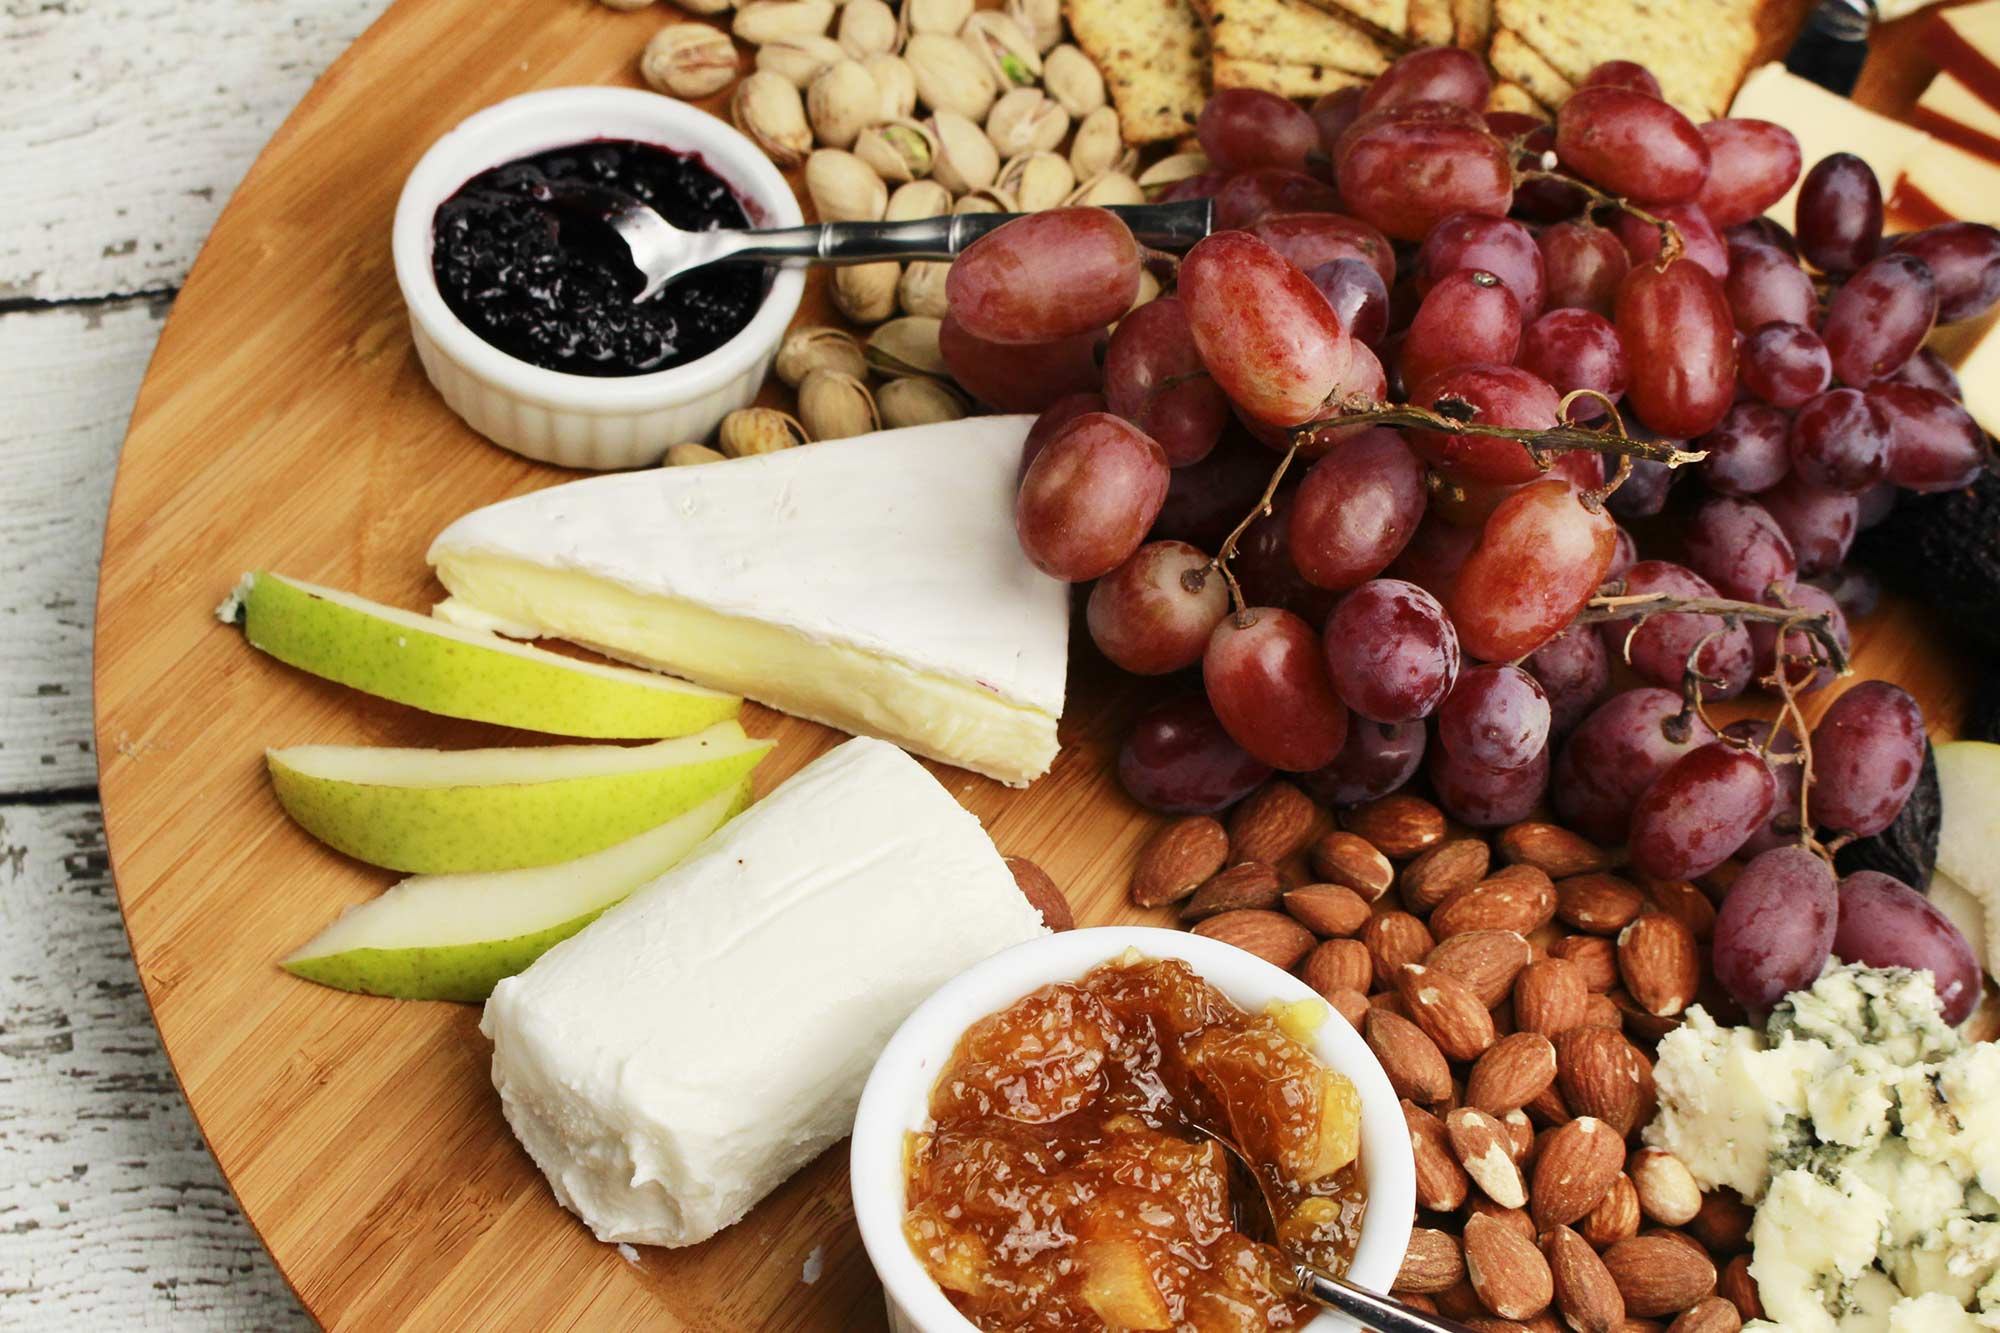 Farm Fresh Preserves, Cheese and Nut Plate